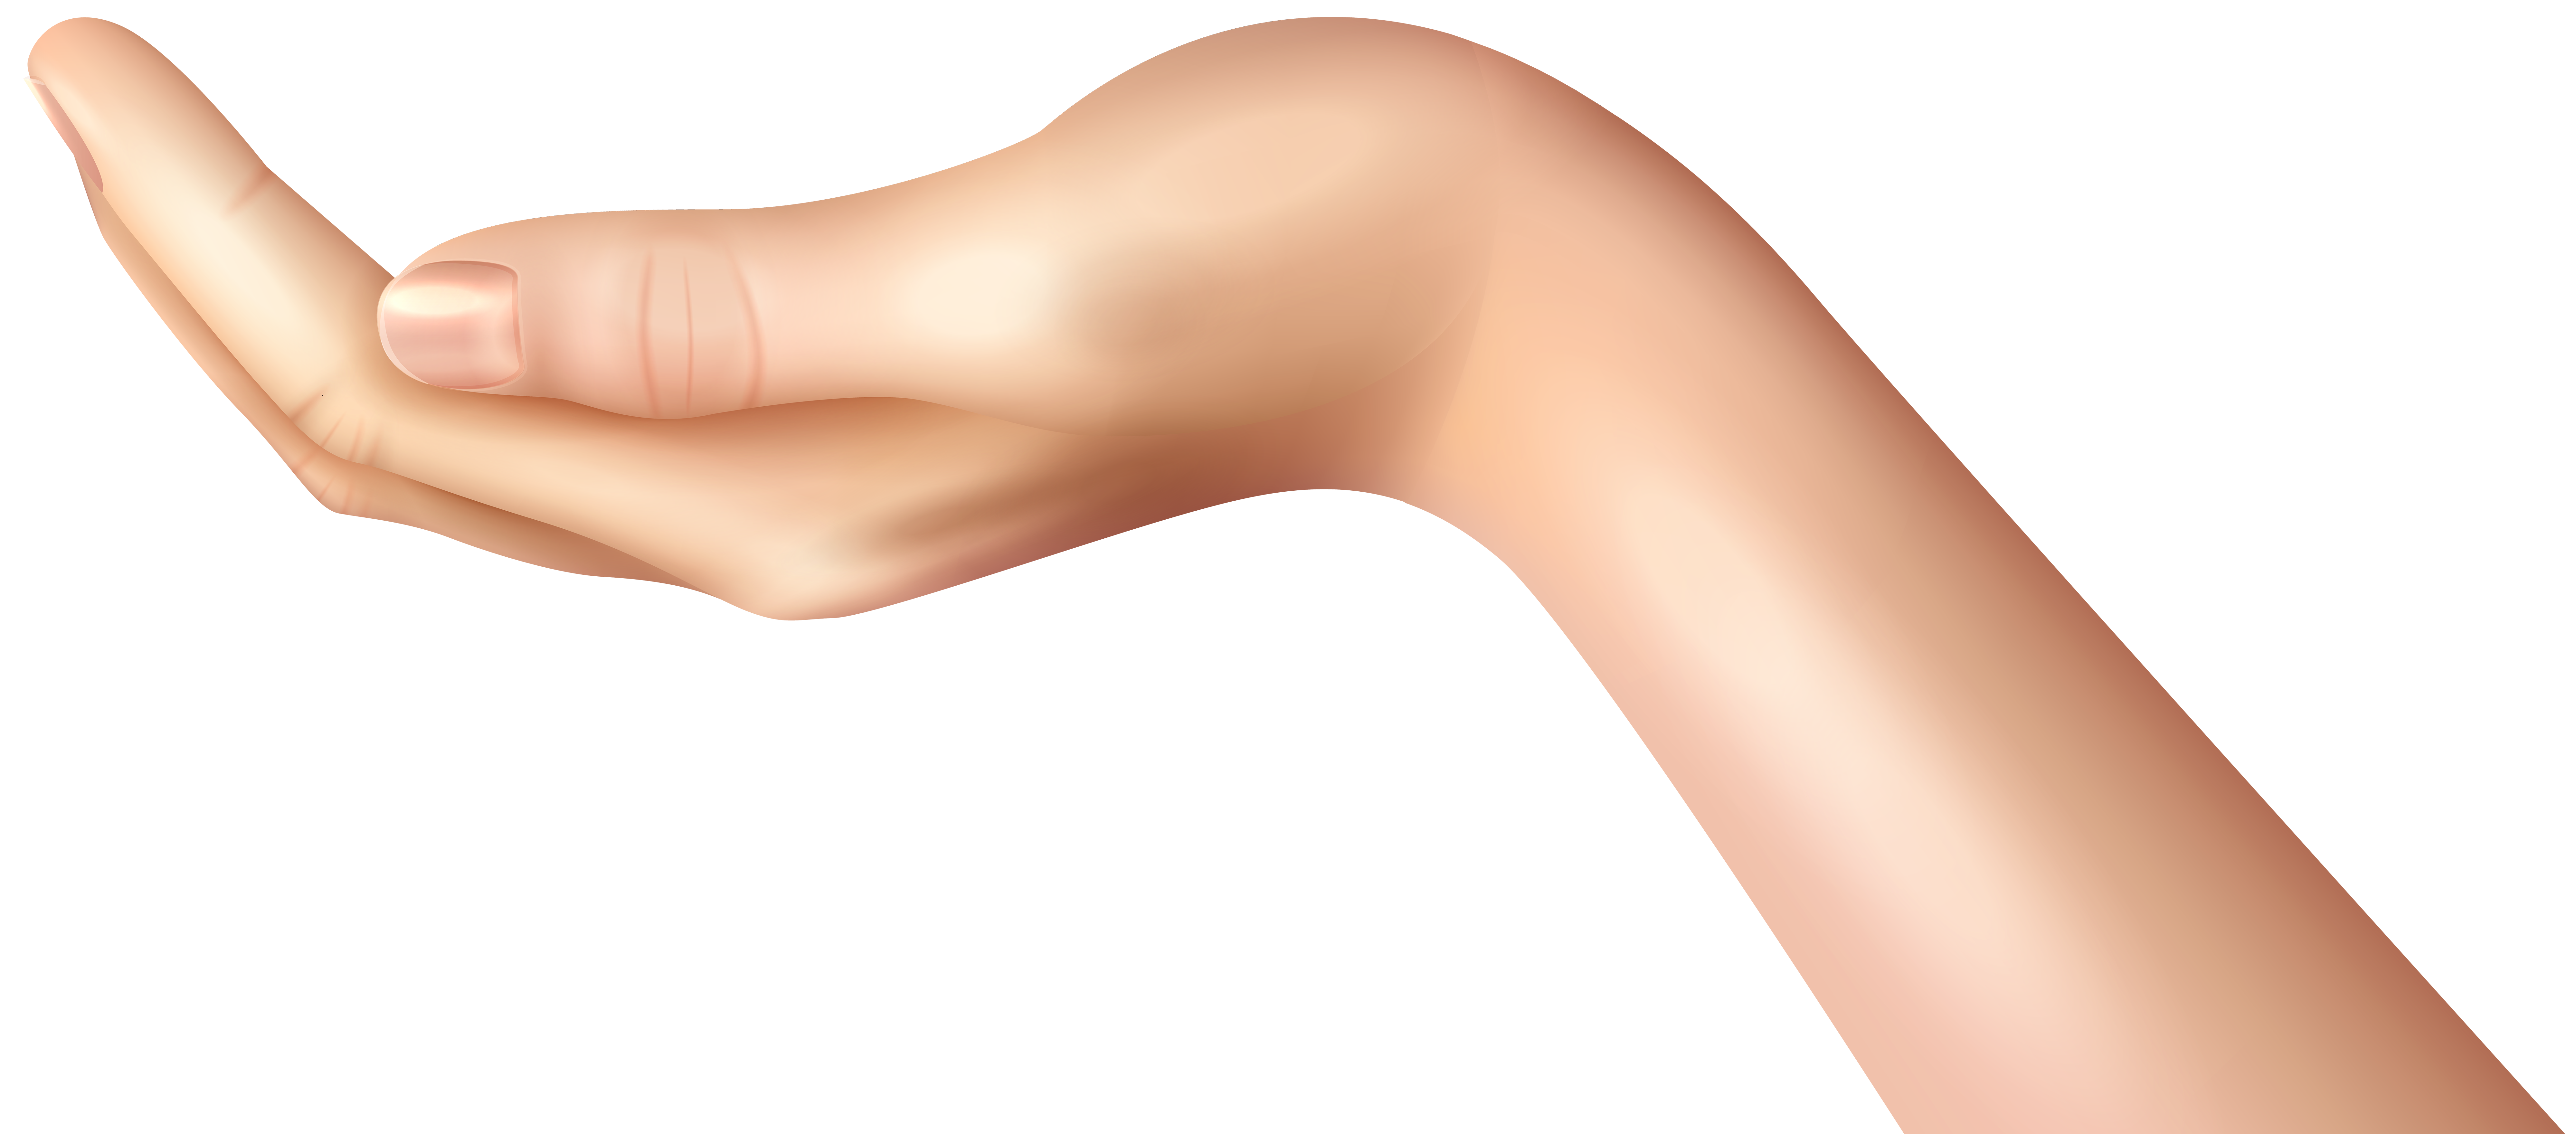 Hands clipart hand holding. Woman gesture png clip